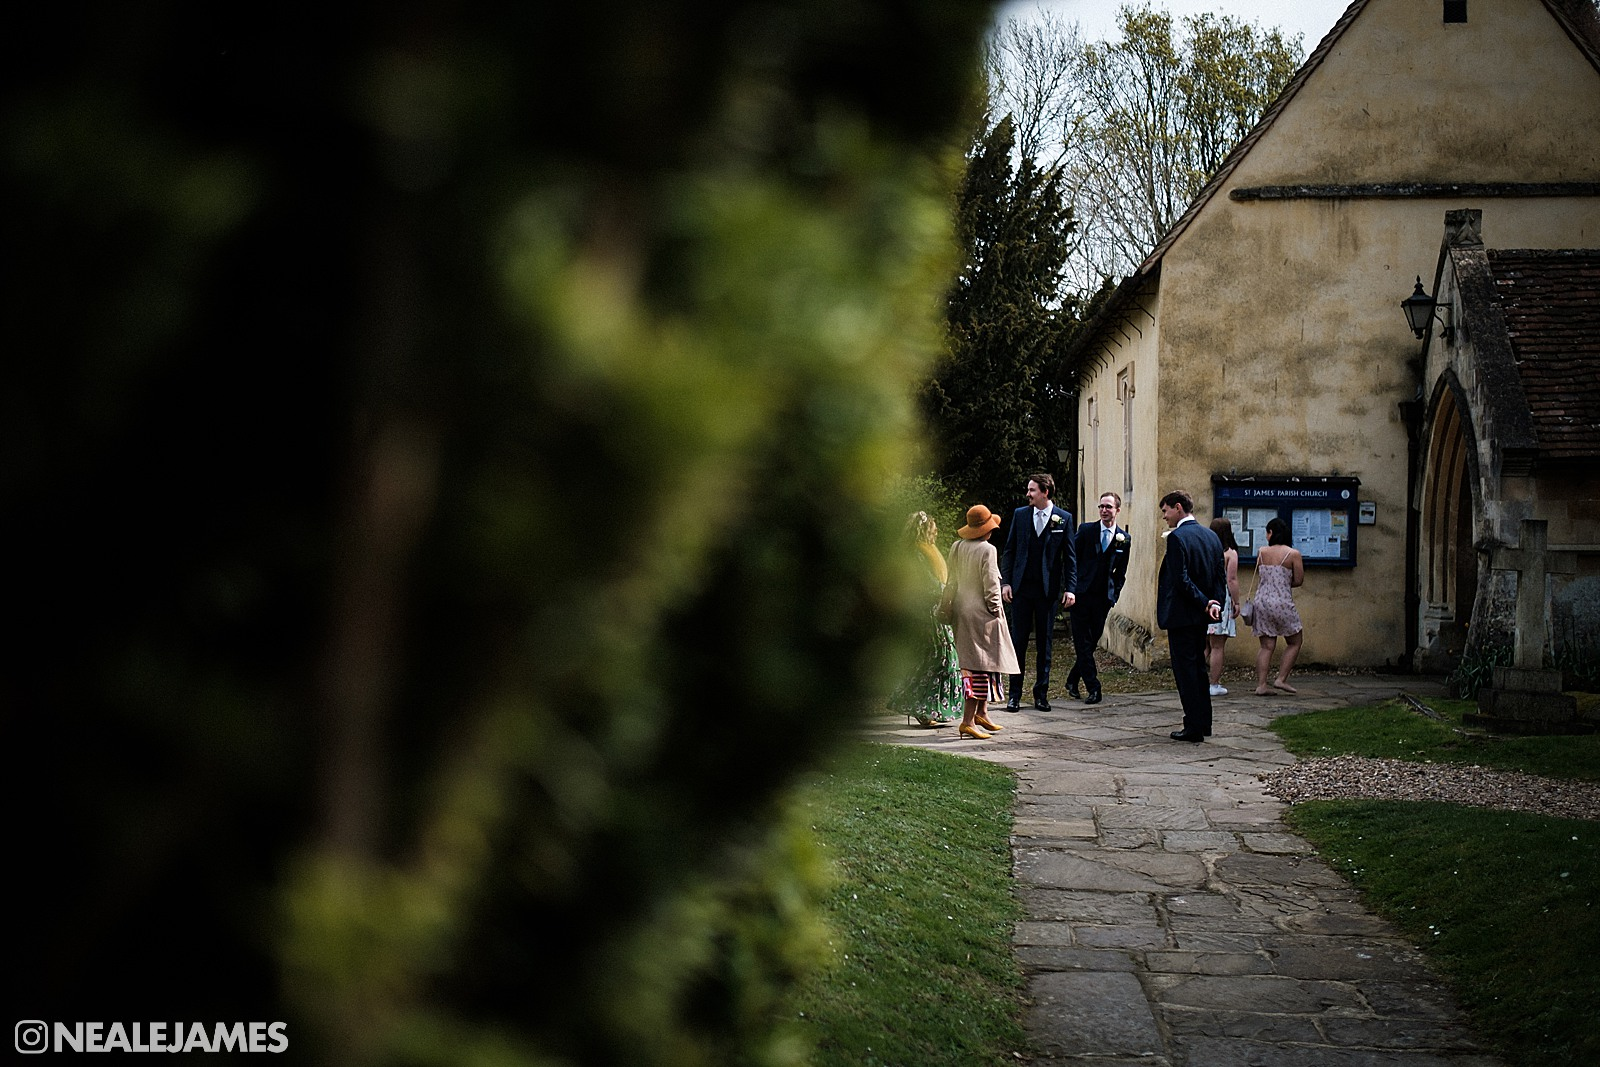 Colour picture of the groom at a wedding waiting outside a church in Hampshire